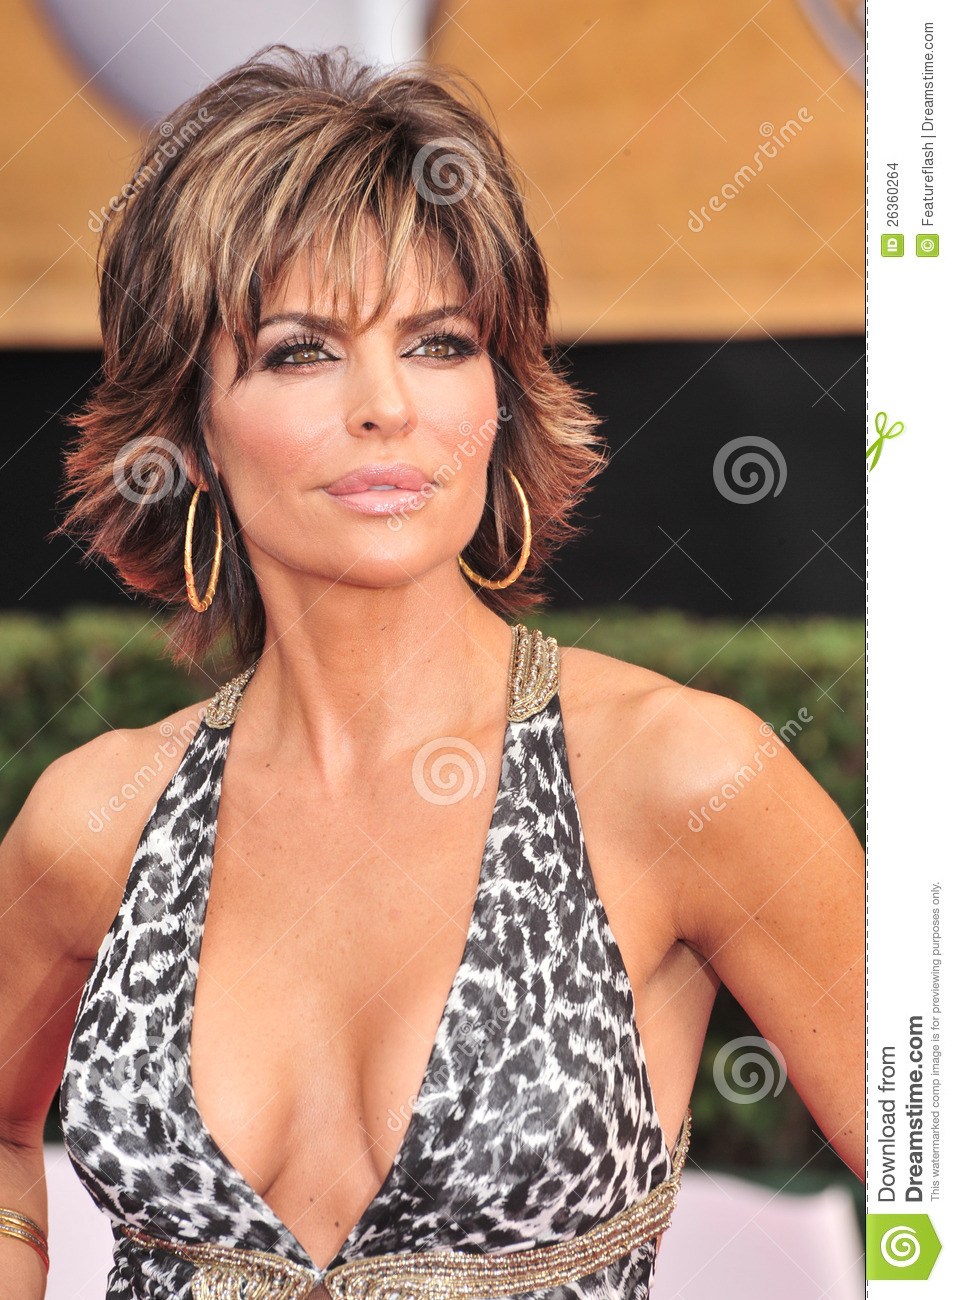 Lisa rinna having anal sex